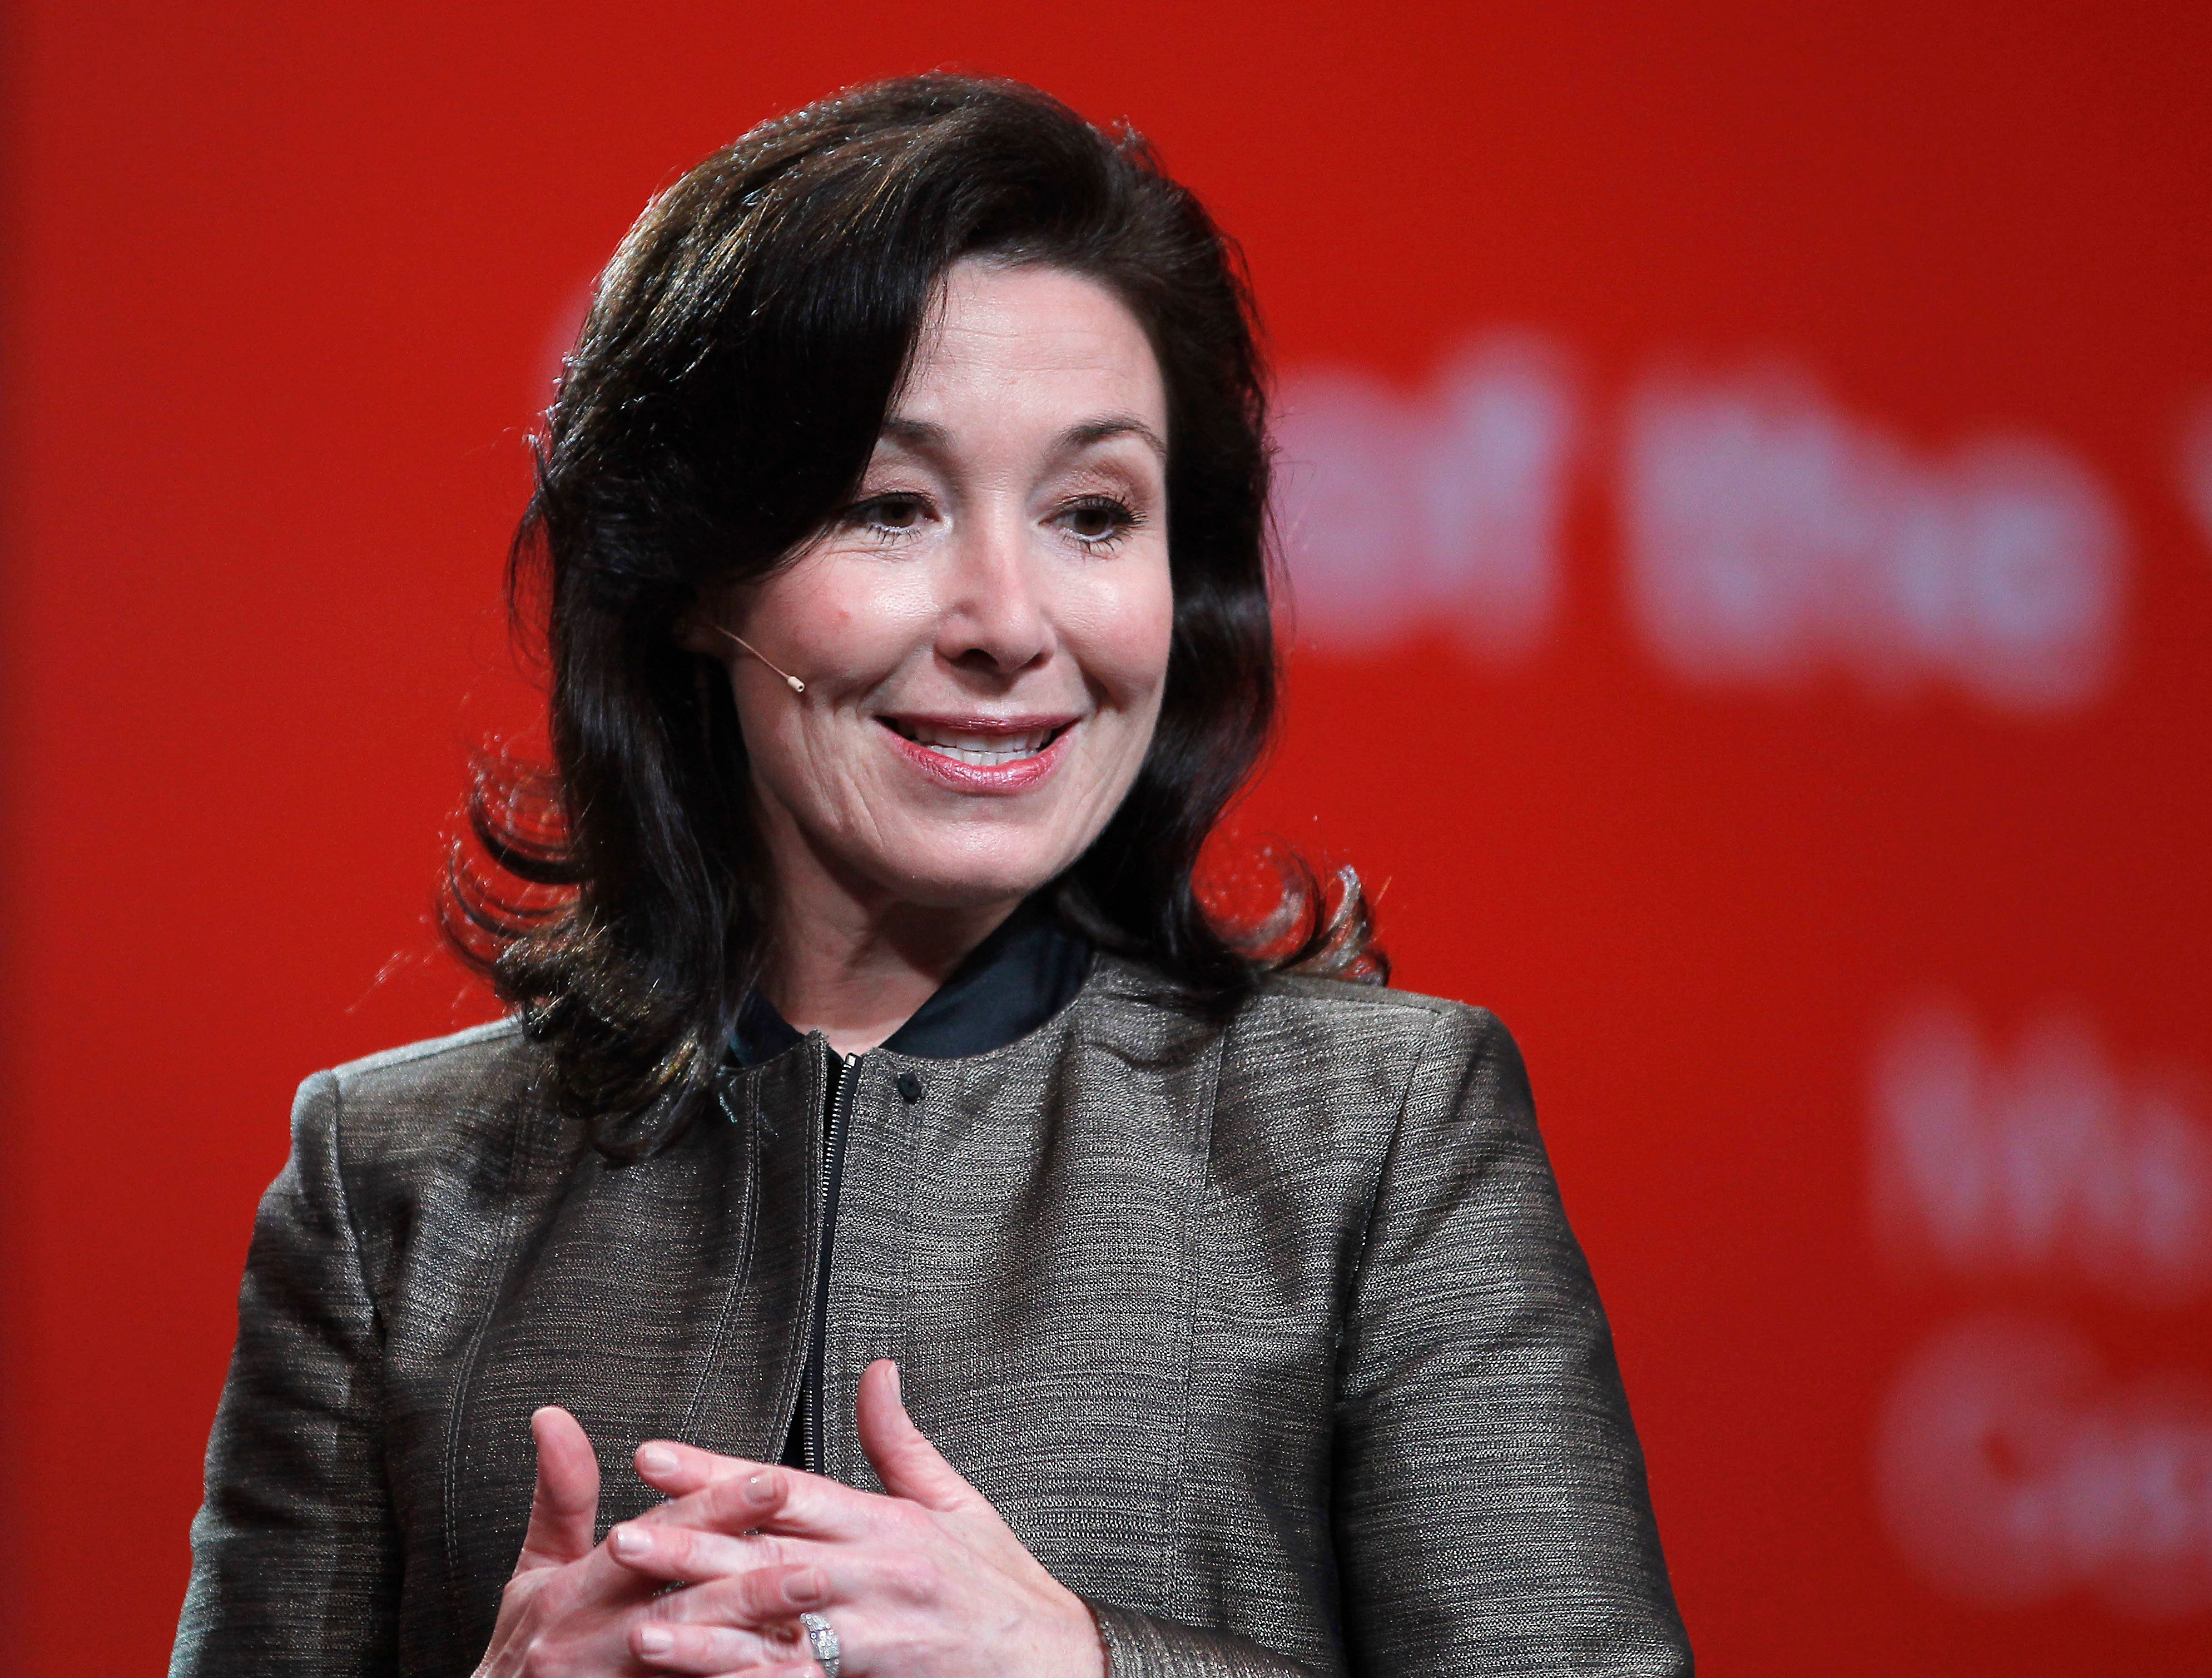 Safra Catz, co-president of Oracle Corp., speaks at the Oracle OpenWorld Conference in San Francisco, California, U.S., on Sunday, Sept. 19, 2010. Oracle Corp. is counting on hardware to spur a new wave of growth, underpinned by its acquisition of Sun Microsystems Inc. this year. Photographer: Tony Avelar/Bloomberg via Getty Images